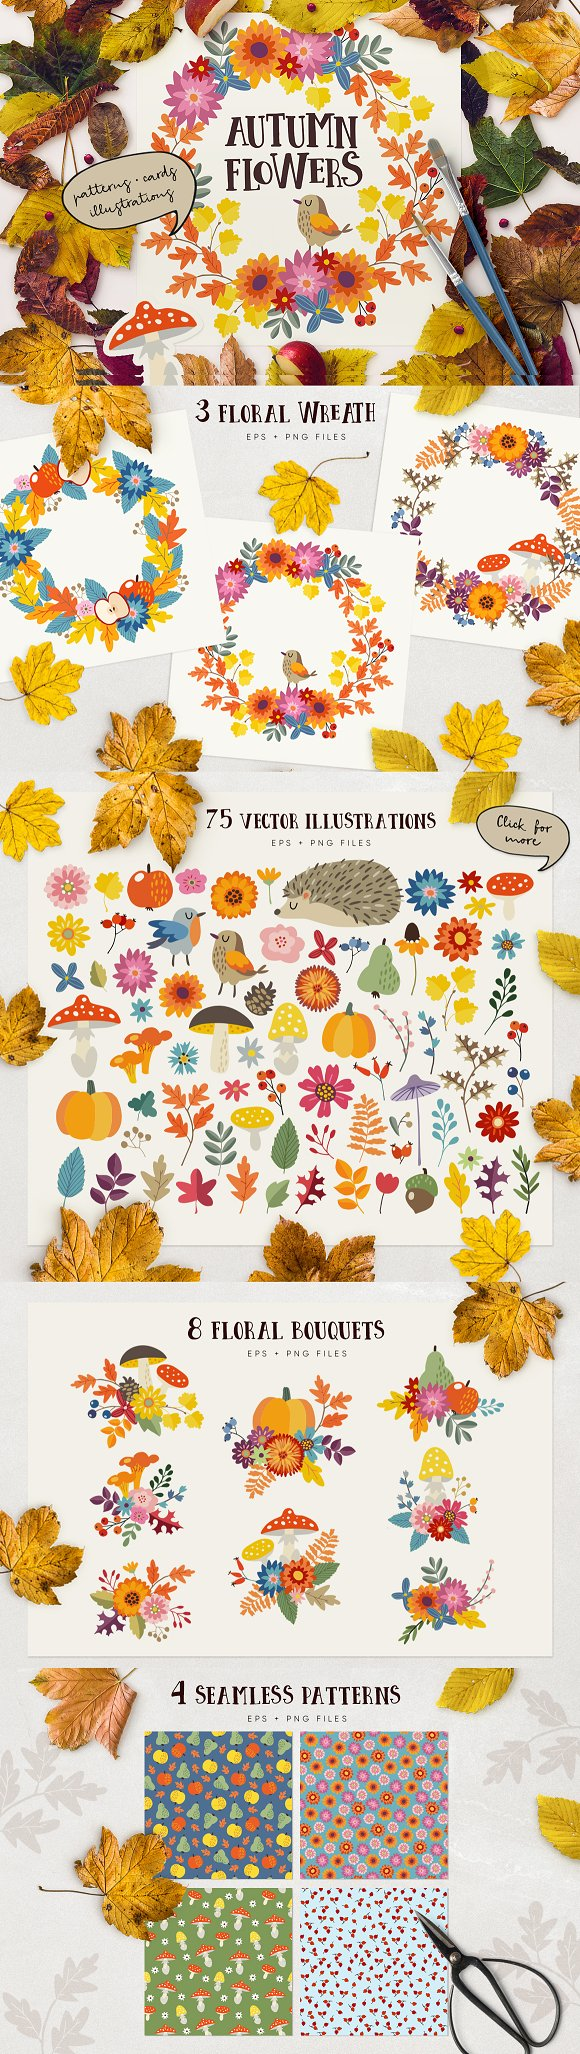 Autumn flowers graphic coll-Graphicriver中文最全的素材分享平台